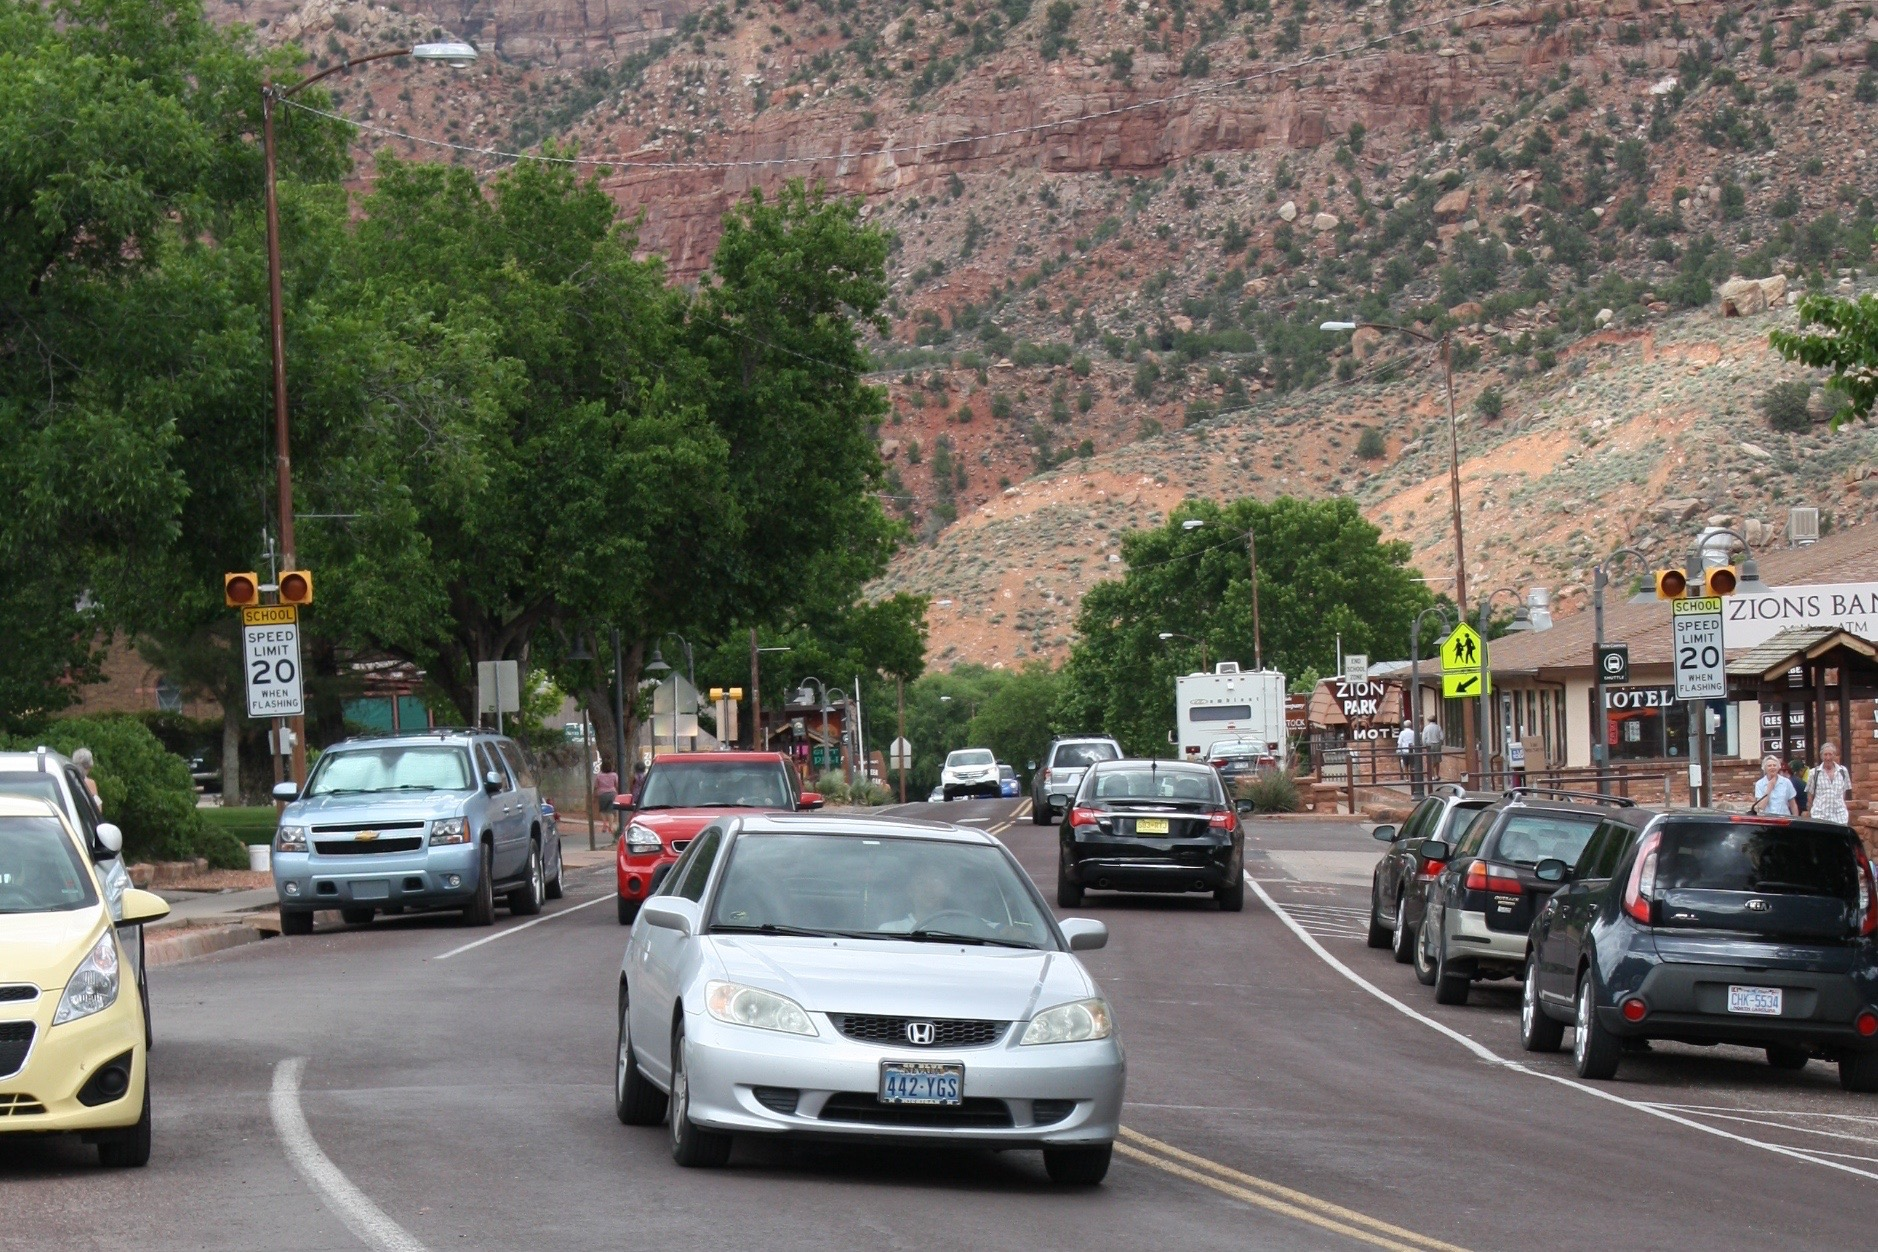 Downtown Springdale, Utah, June 11, 2015 | Photo by Reuben Wadsworth, St. George News